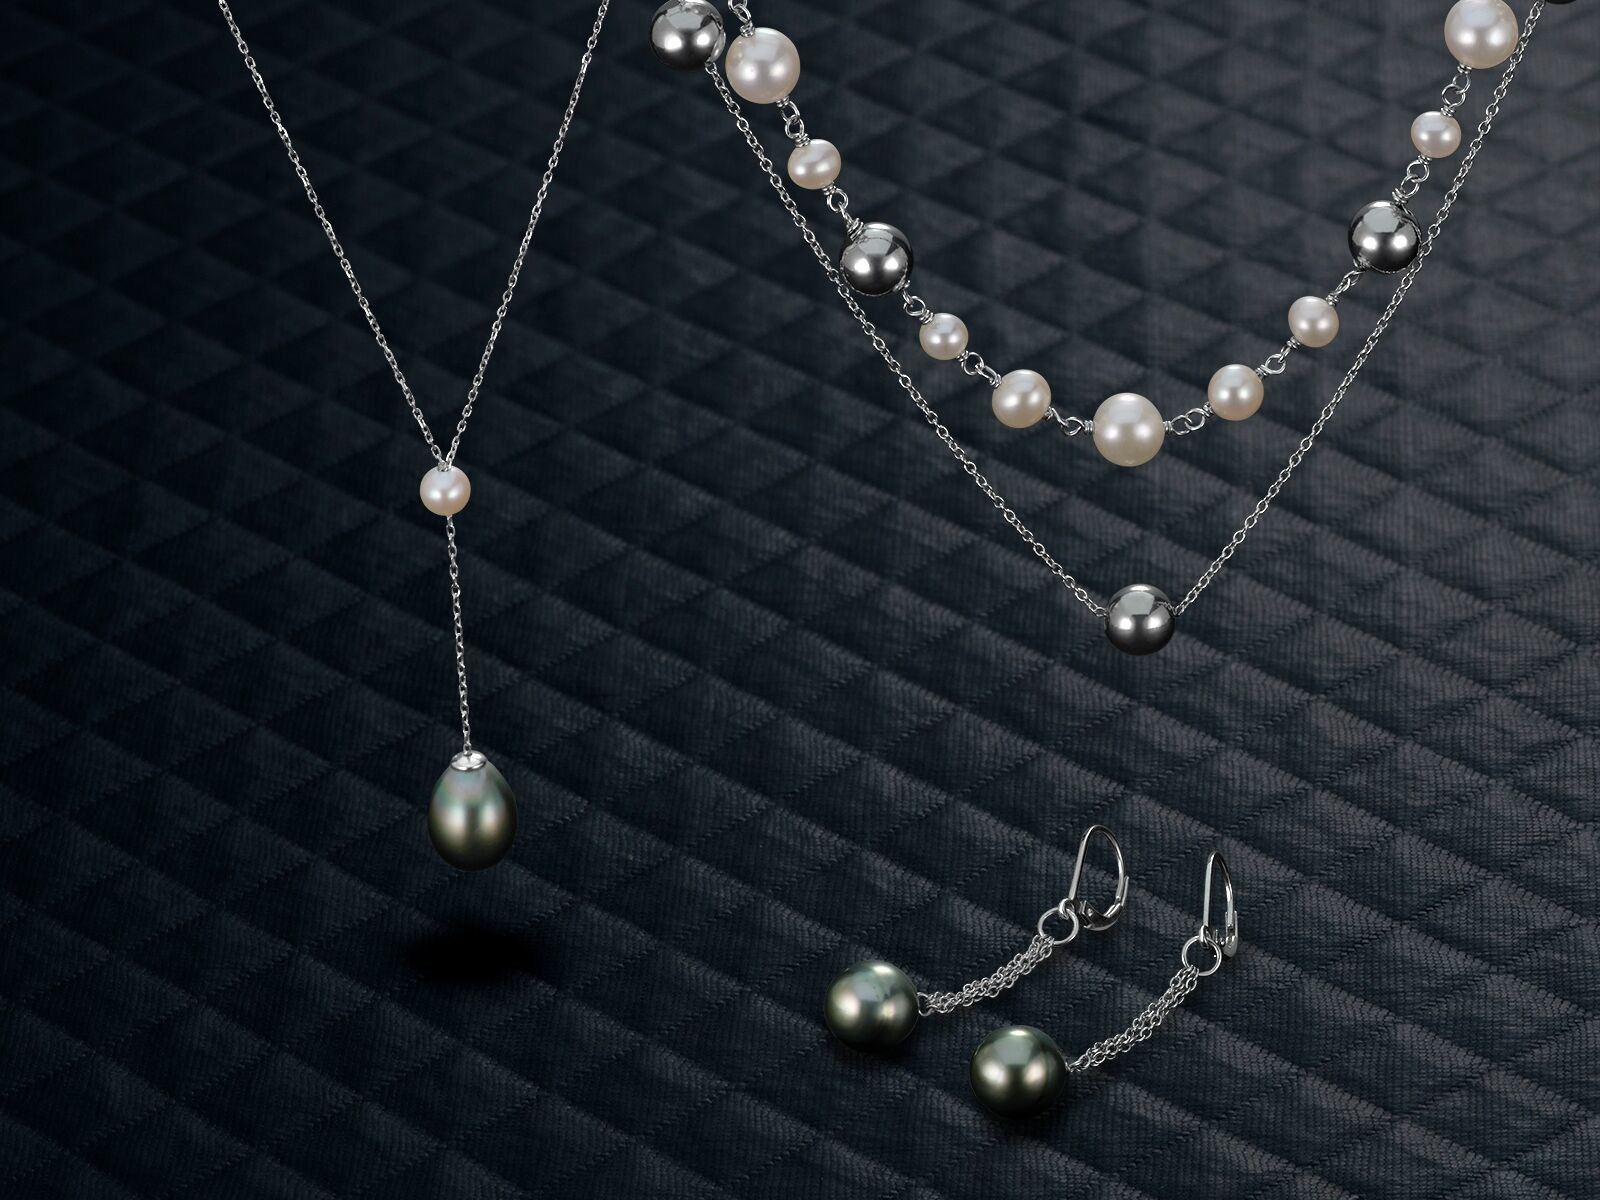 d7e2bd792d6c5 Shane Co. Presents Top Jewelry Picks from Their Toyland Holiday ...